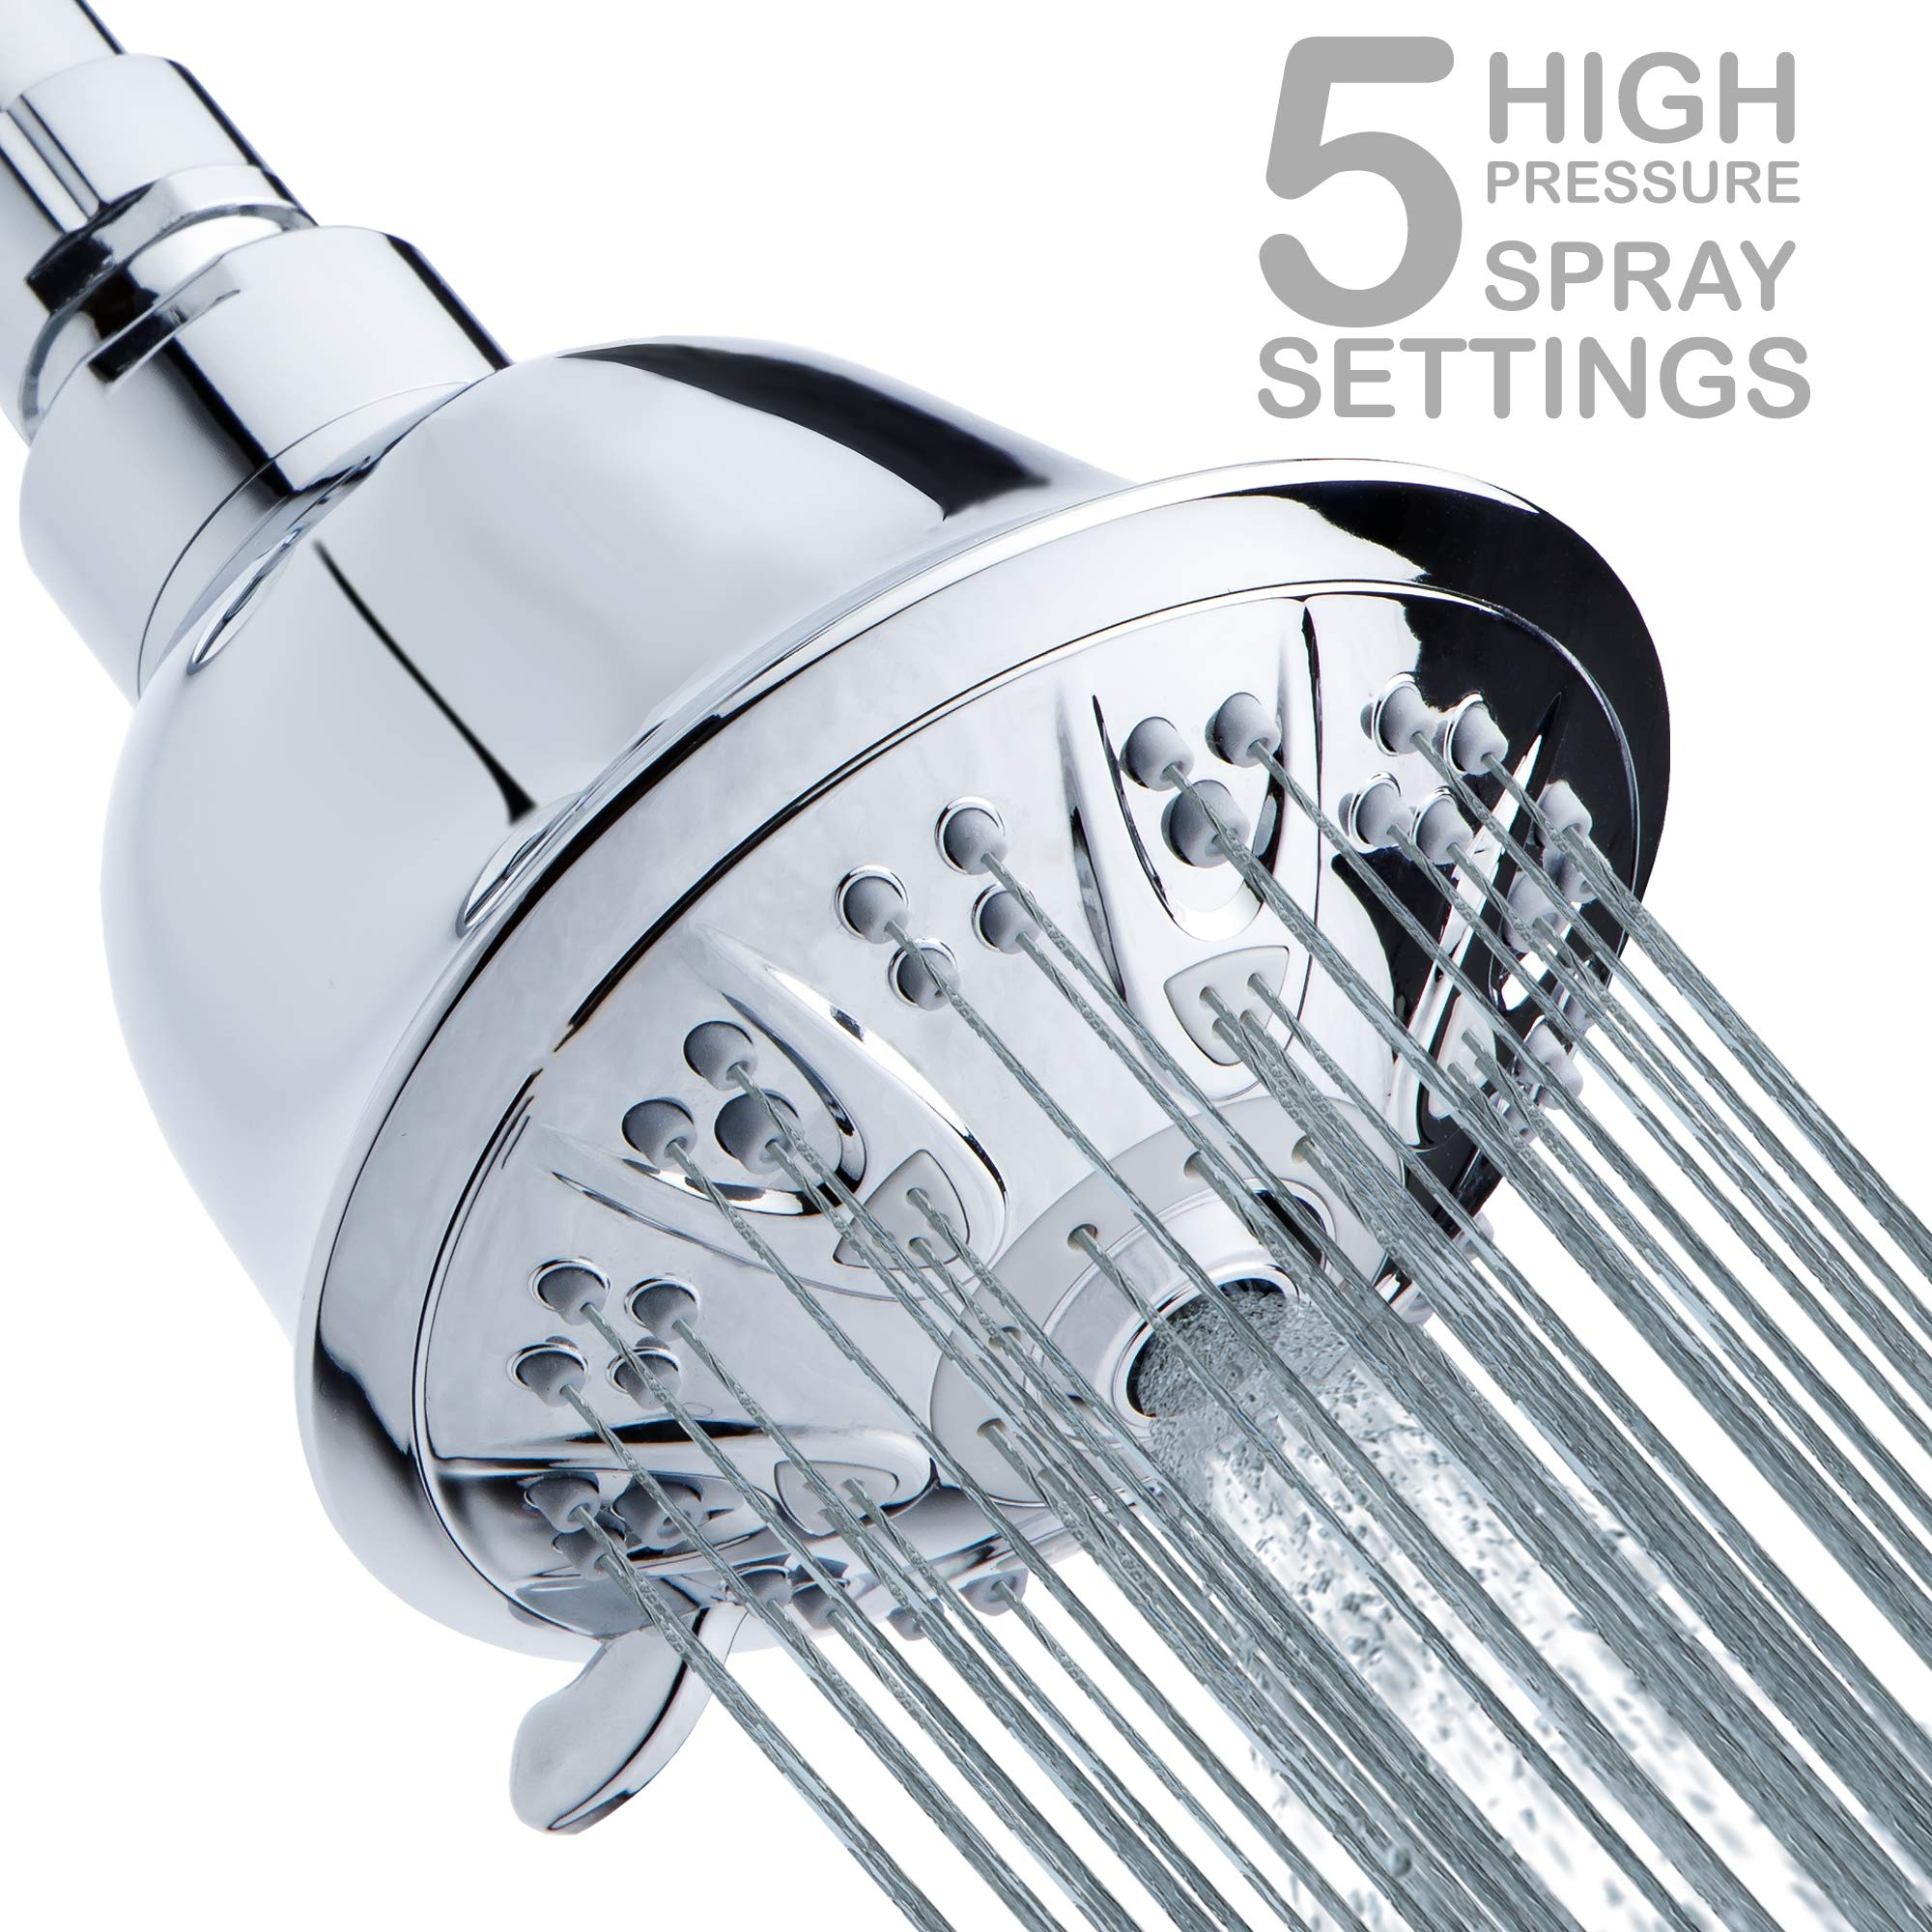 High-Pressure Shower Head 5-Setting - 4'' Luxury Chrome Shower-head - Powerful Shower Spray Even with Low Water Pressure in Supply Pipeline - Low Flow Water Efficient Showerhead - Easy Installation